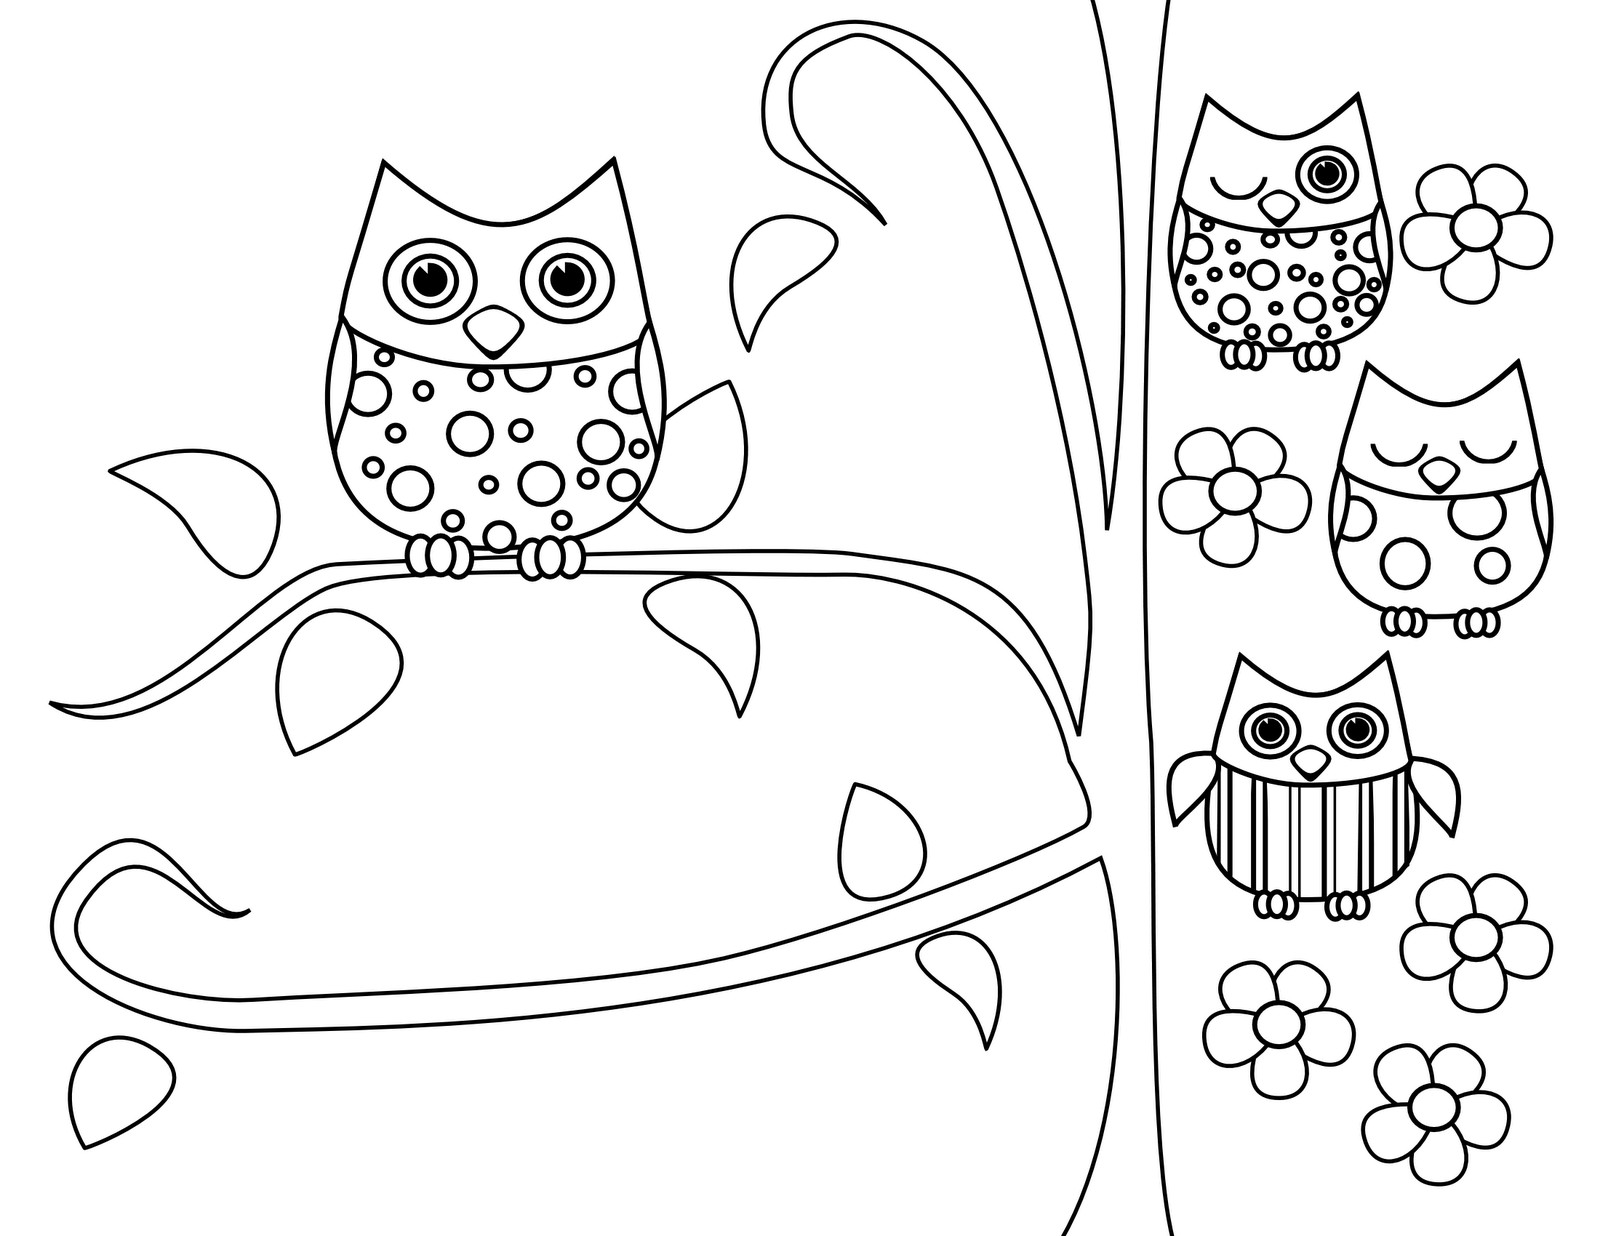 Cute Coloring Pages For Adults  Cute Owl Coloring Pages Coloring Home